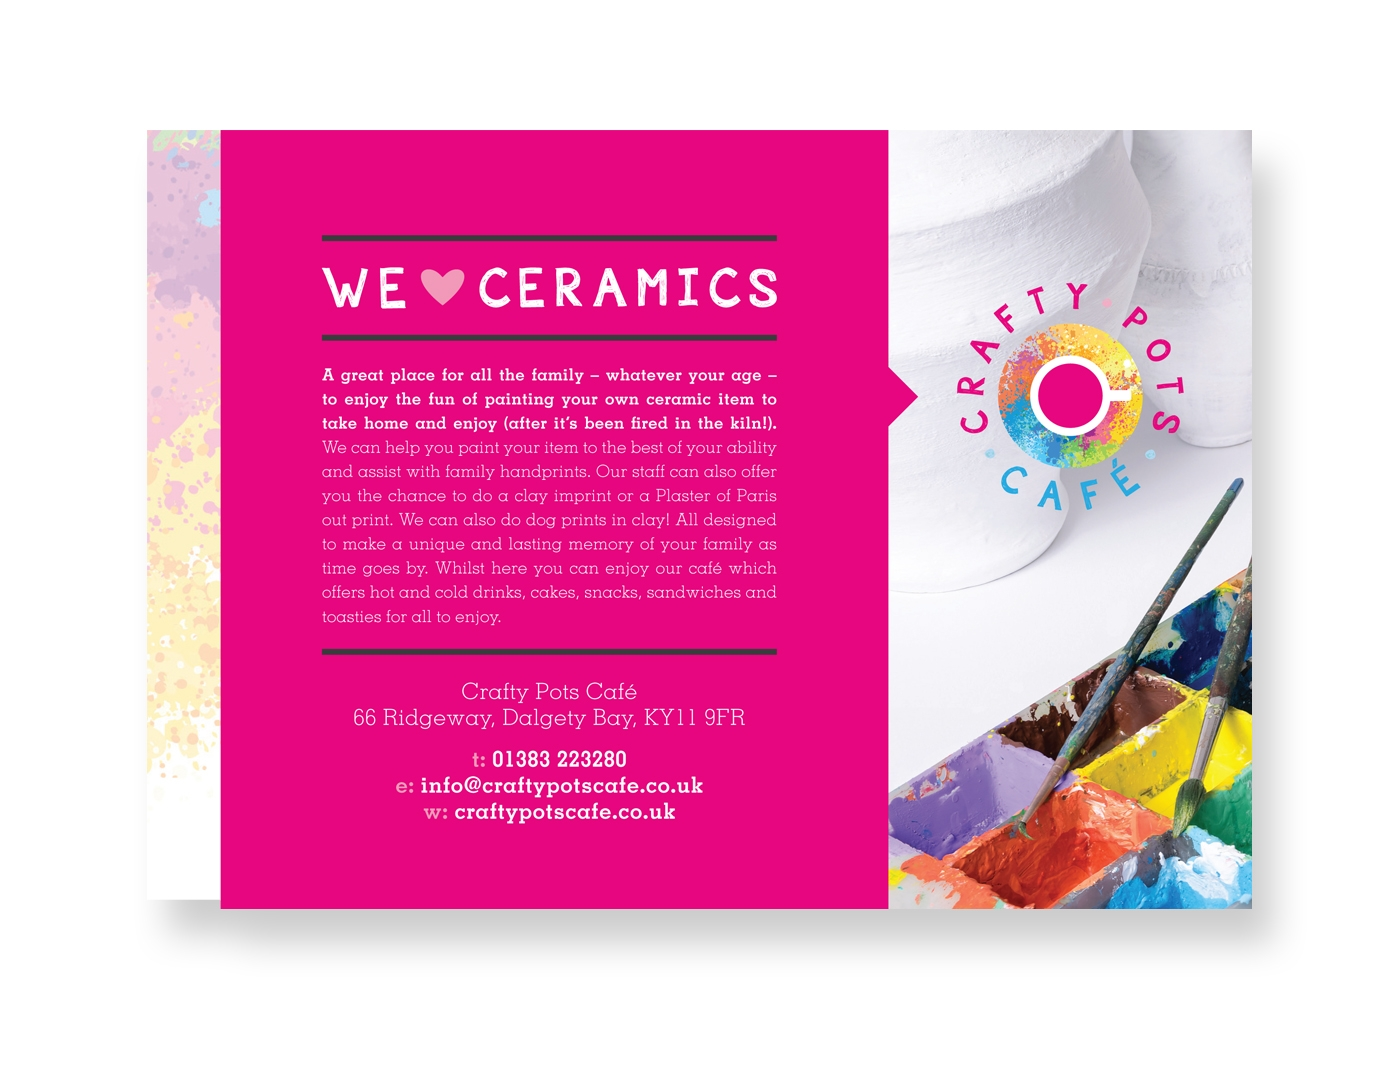 zinc designs - freelance graphic and web designer - CP 03